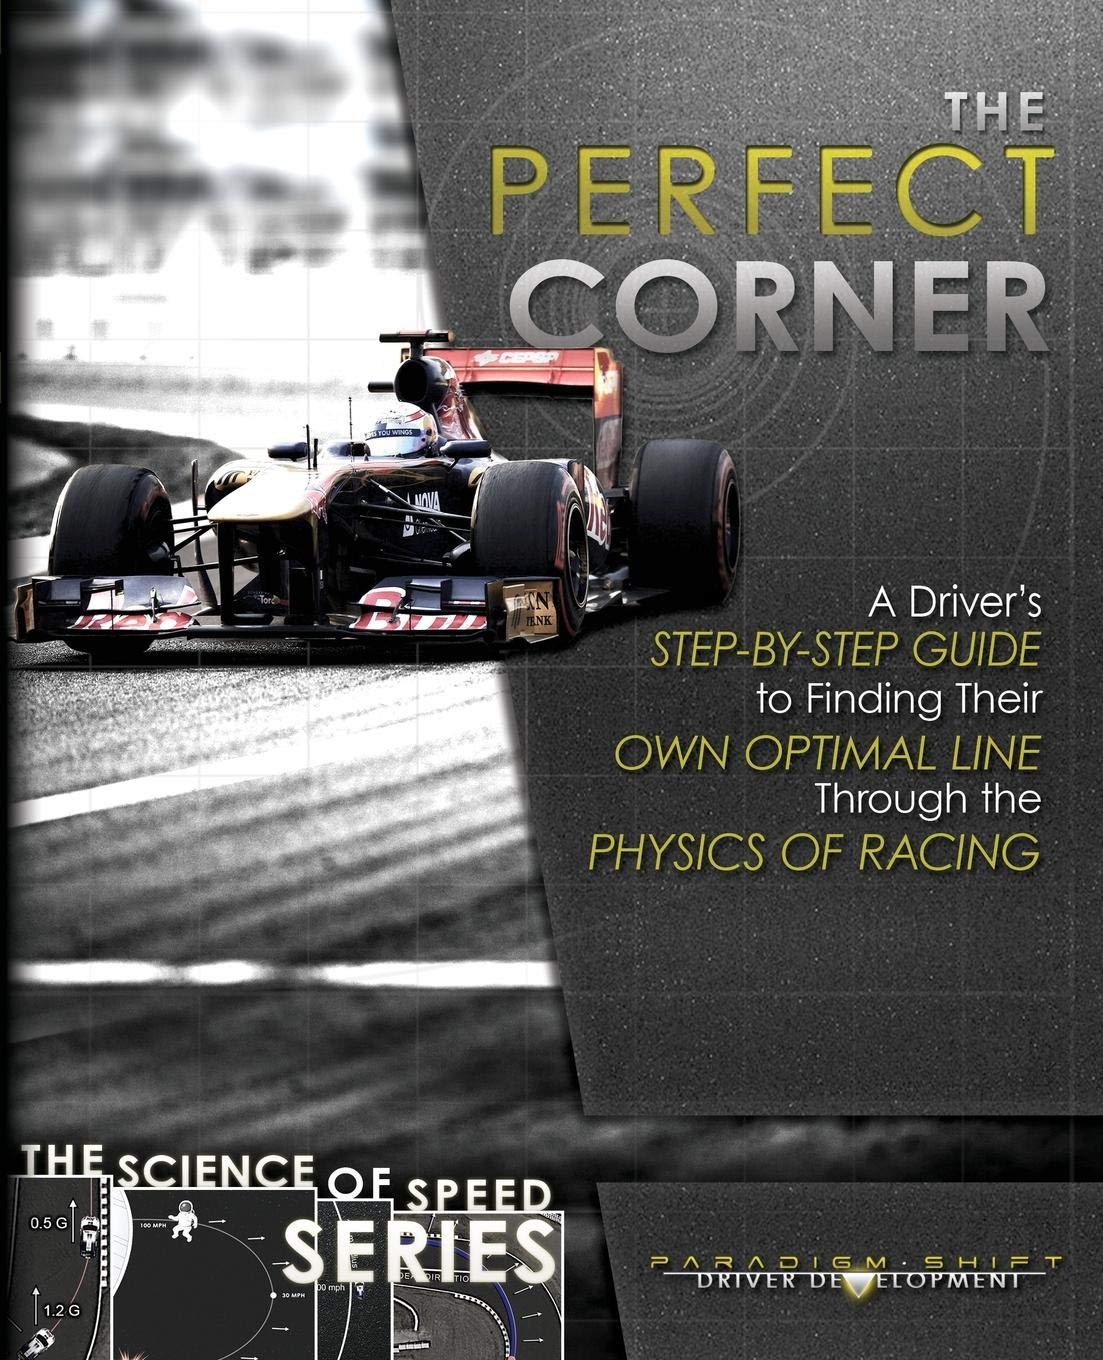 The Perfect Corner: A Driver's Step-By-Step Guide to Finding